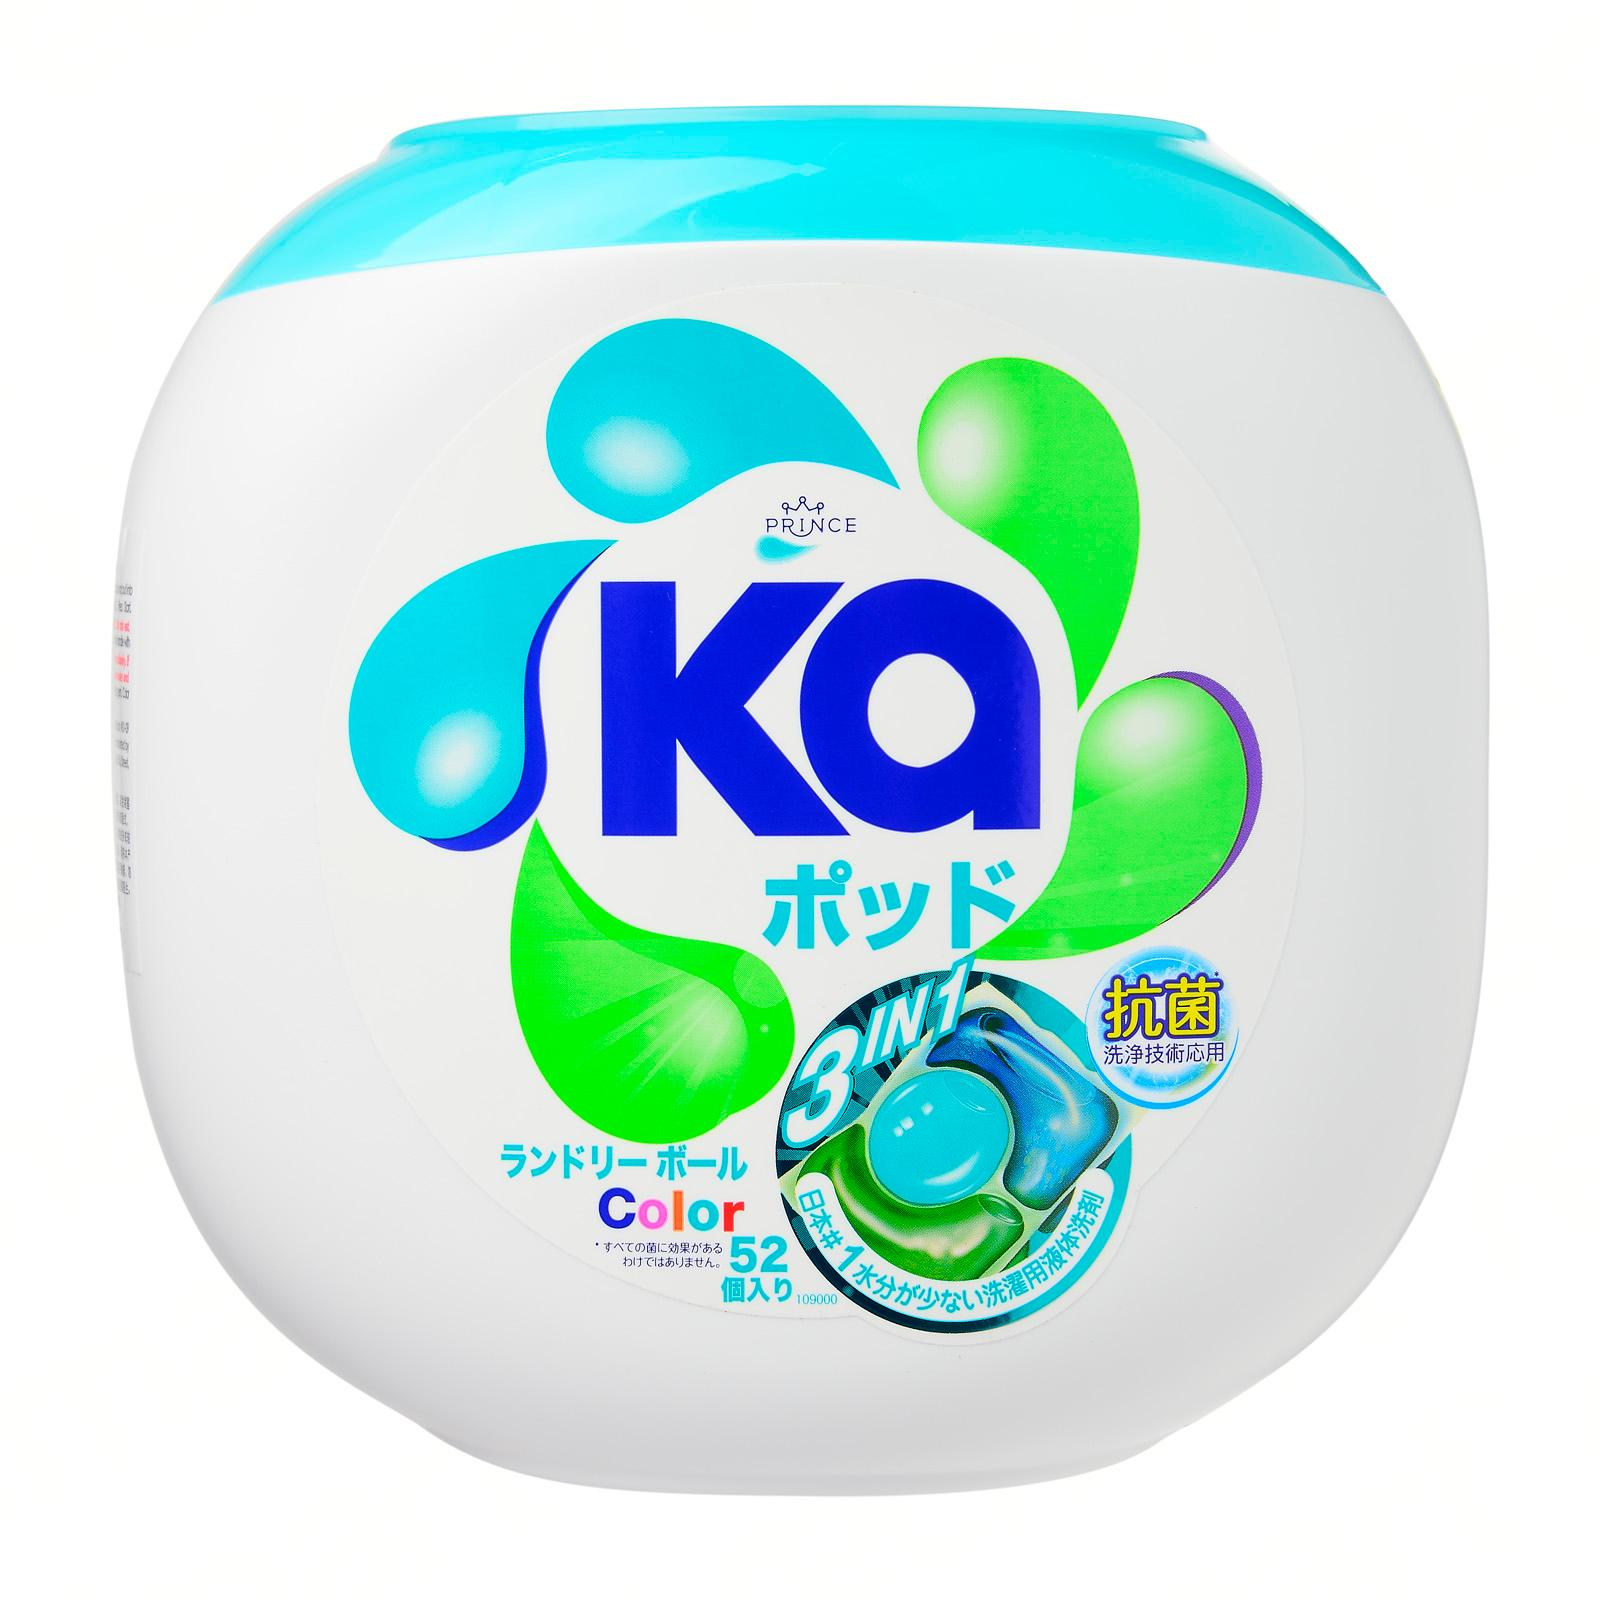 Ka 3In1 Laundry Capsule 52PCS - Color